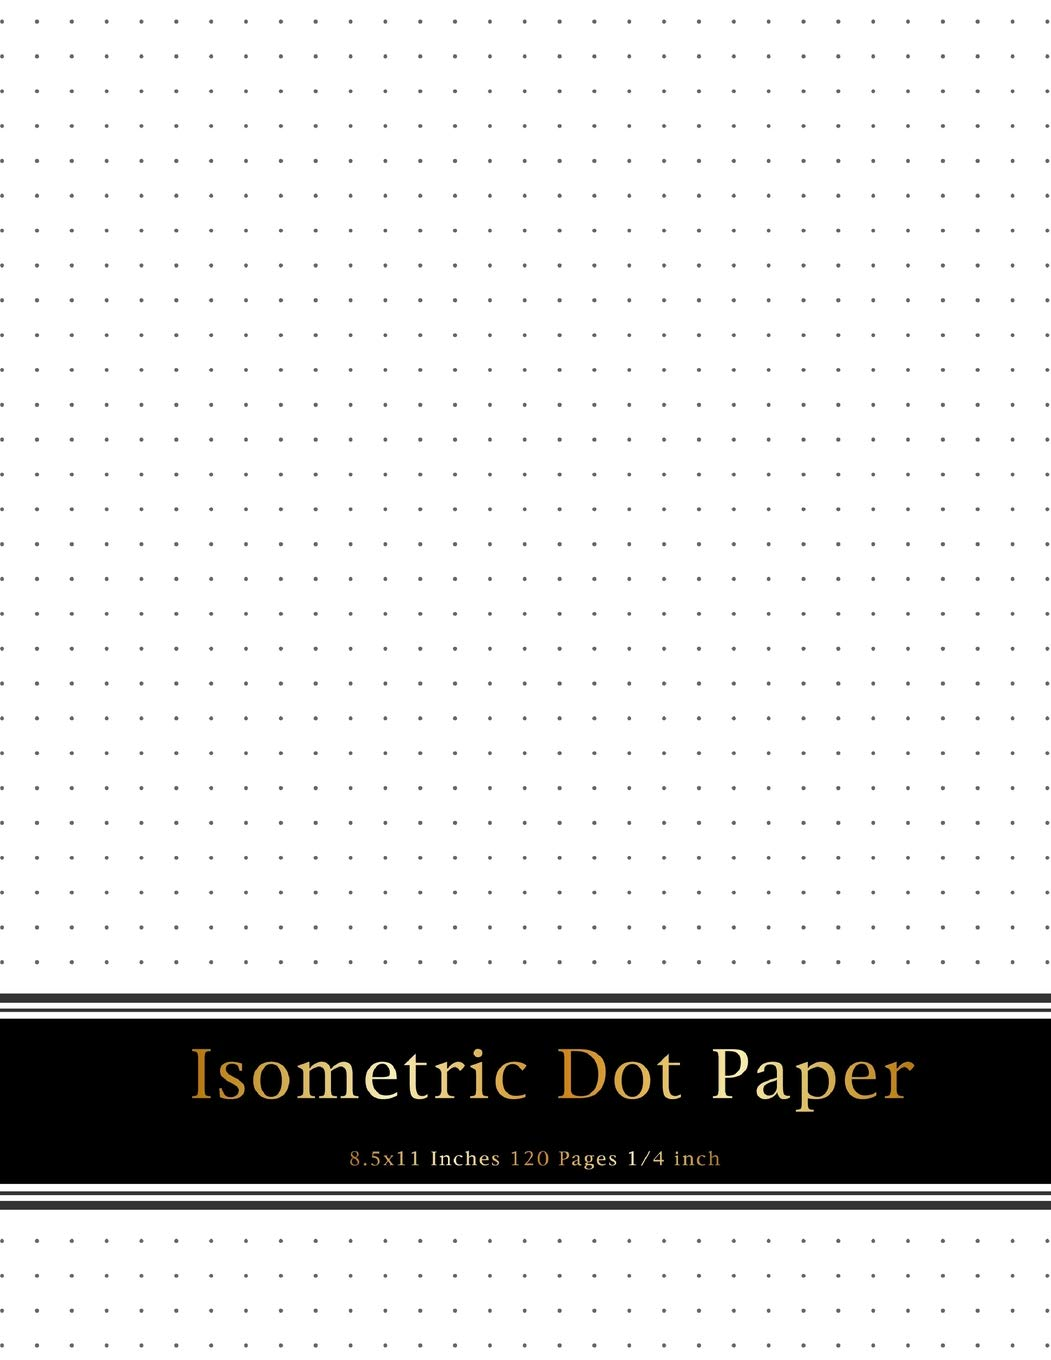 photo about Isometric Dot Paper Printable known as : Isometric Dot Paper: 1/4 inch Length In between